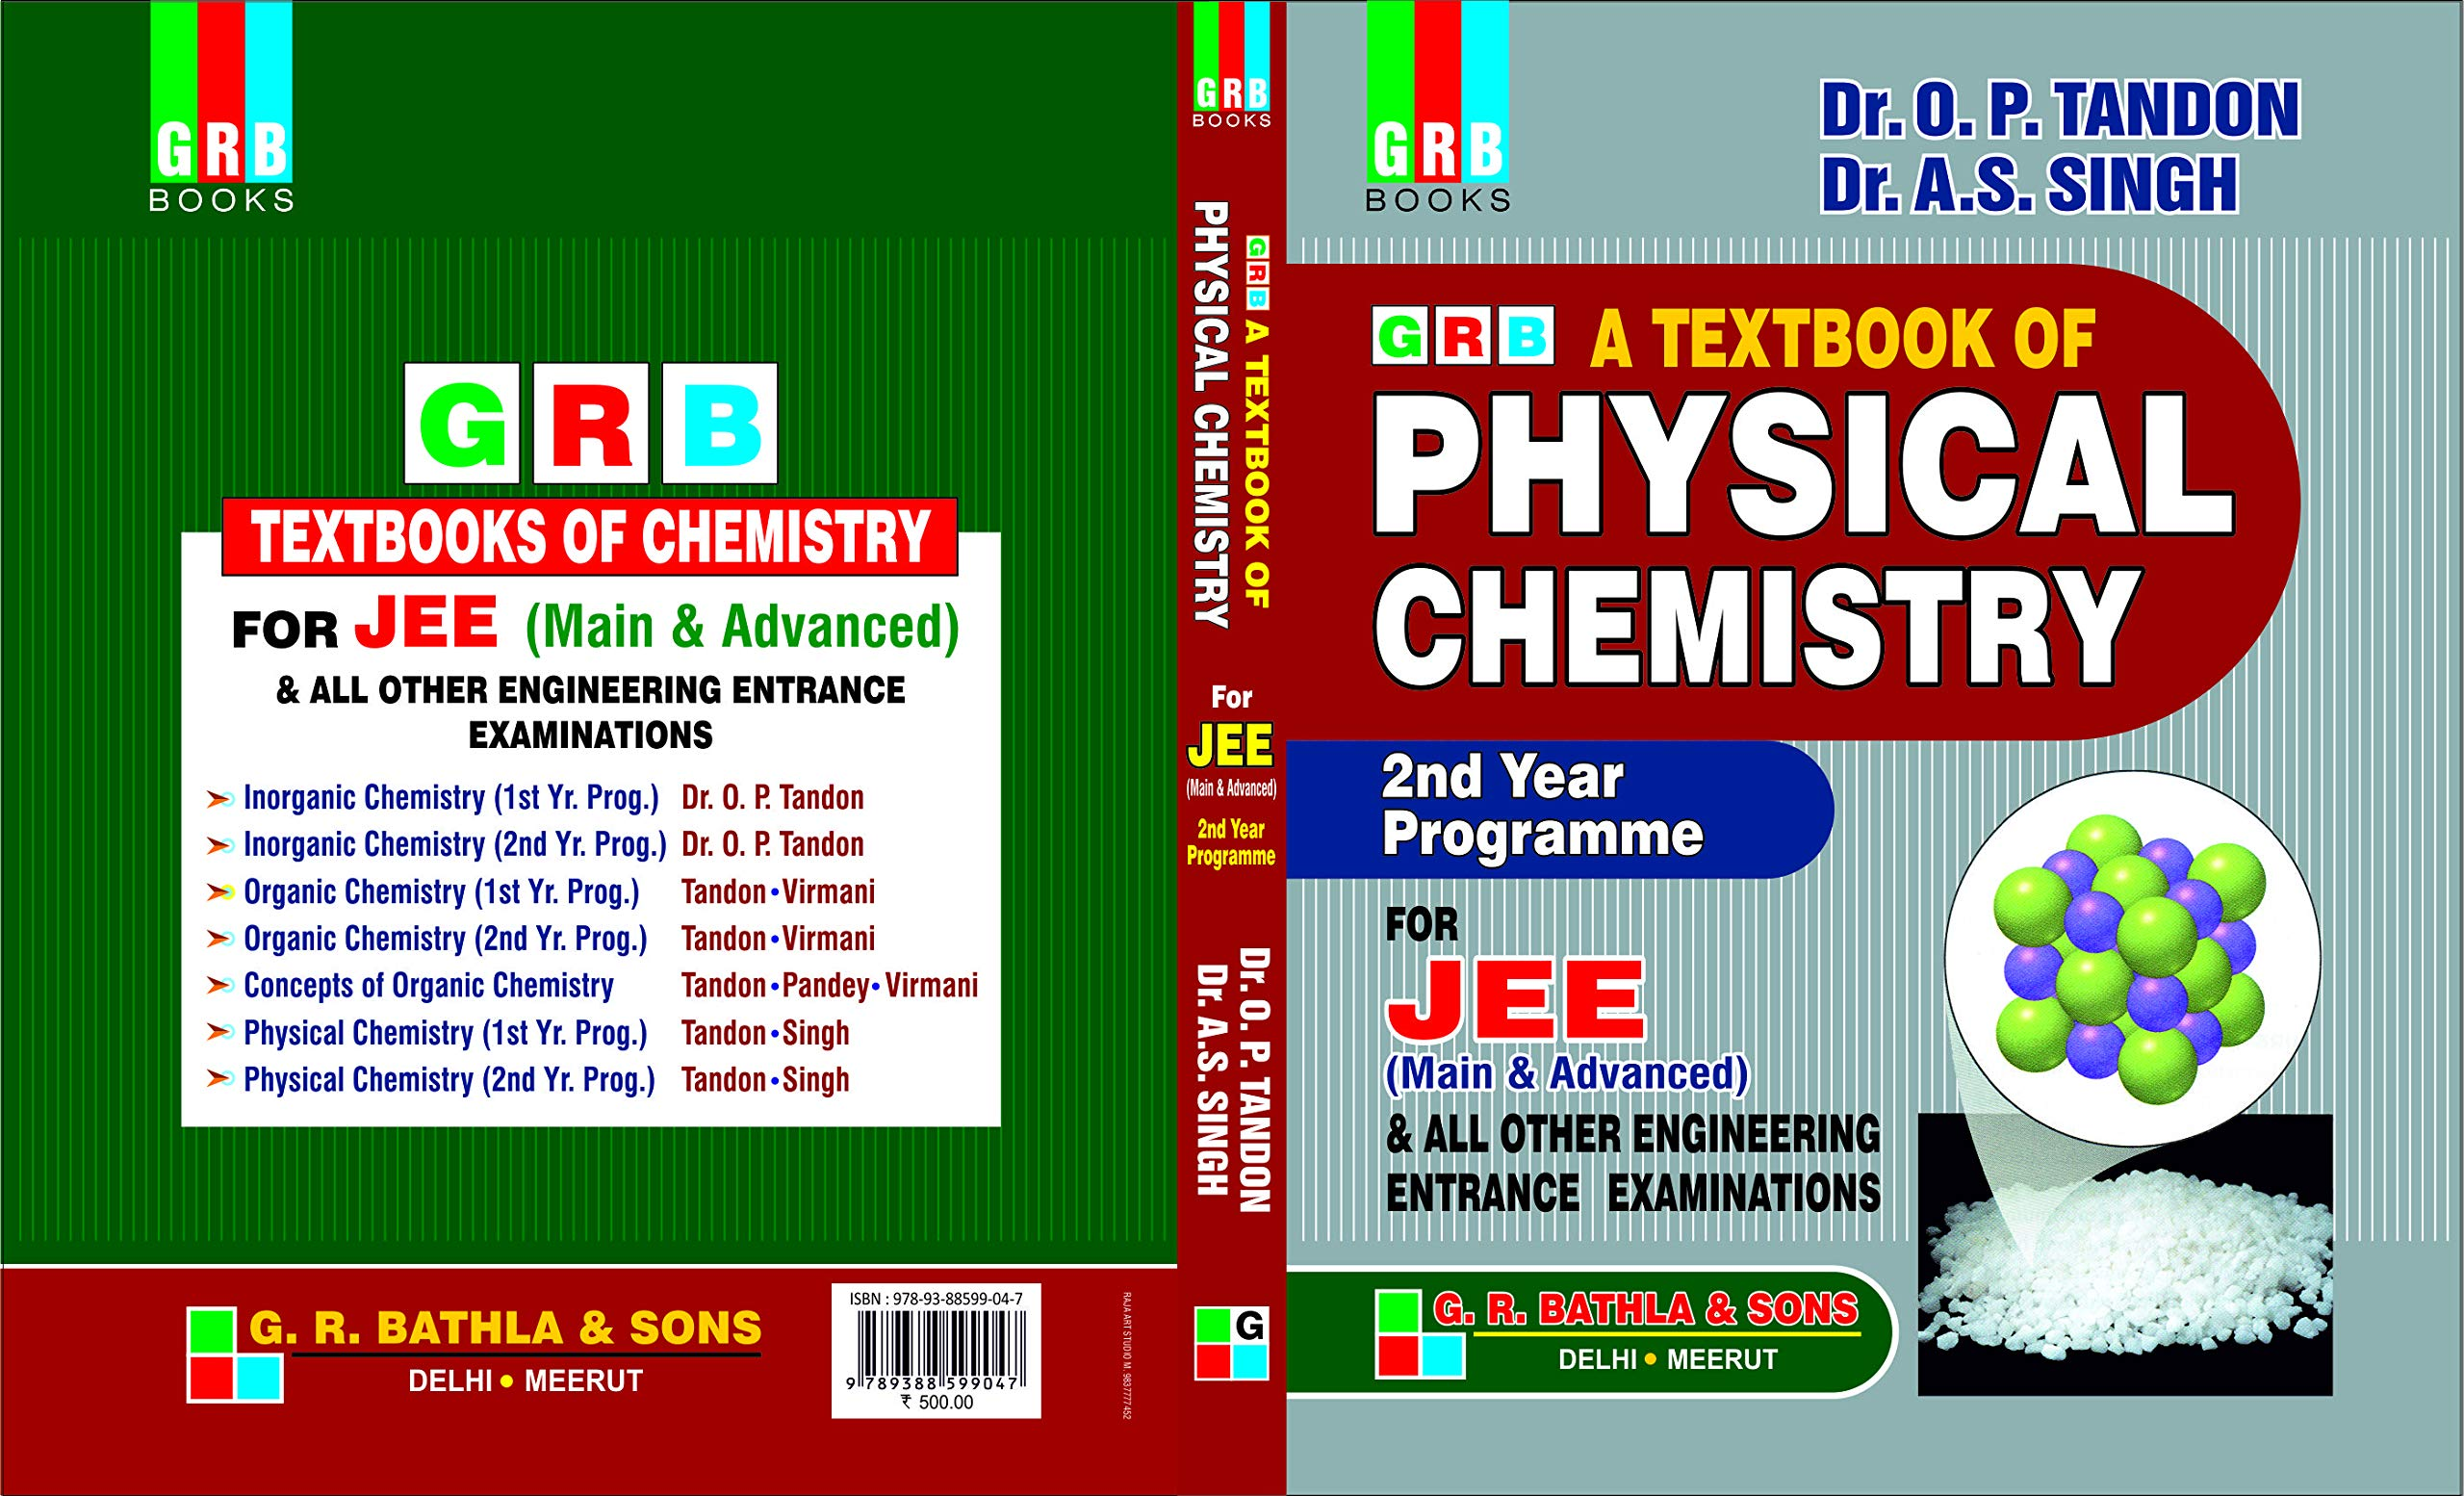 GRB A TEXTBOOK OF PHYSICAL CHEMISTRY FOR COMPETITIONS 2nd YEAR PROGRAMME